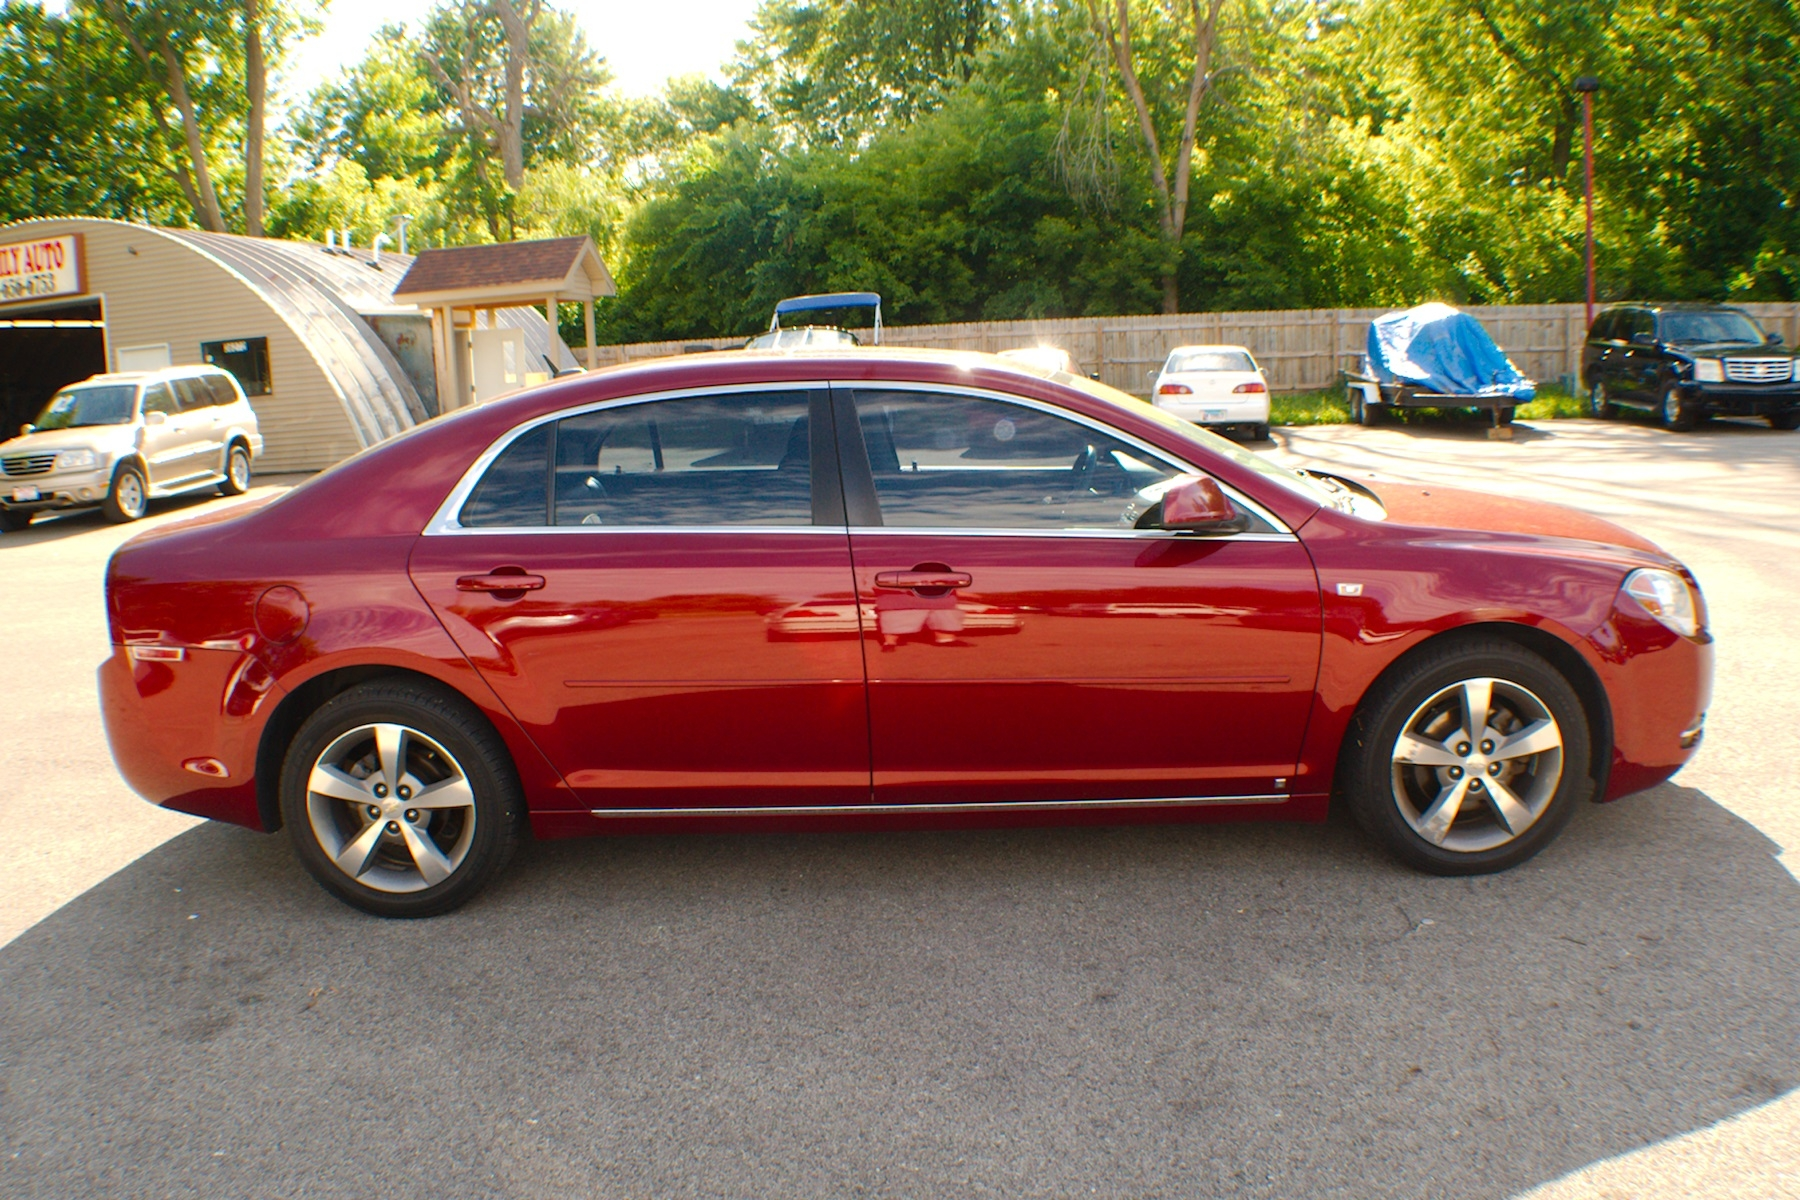 2008 Chevrolet Malibu LT Red Used Sedan Sale Bannockburn Barrington Beach Park